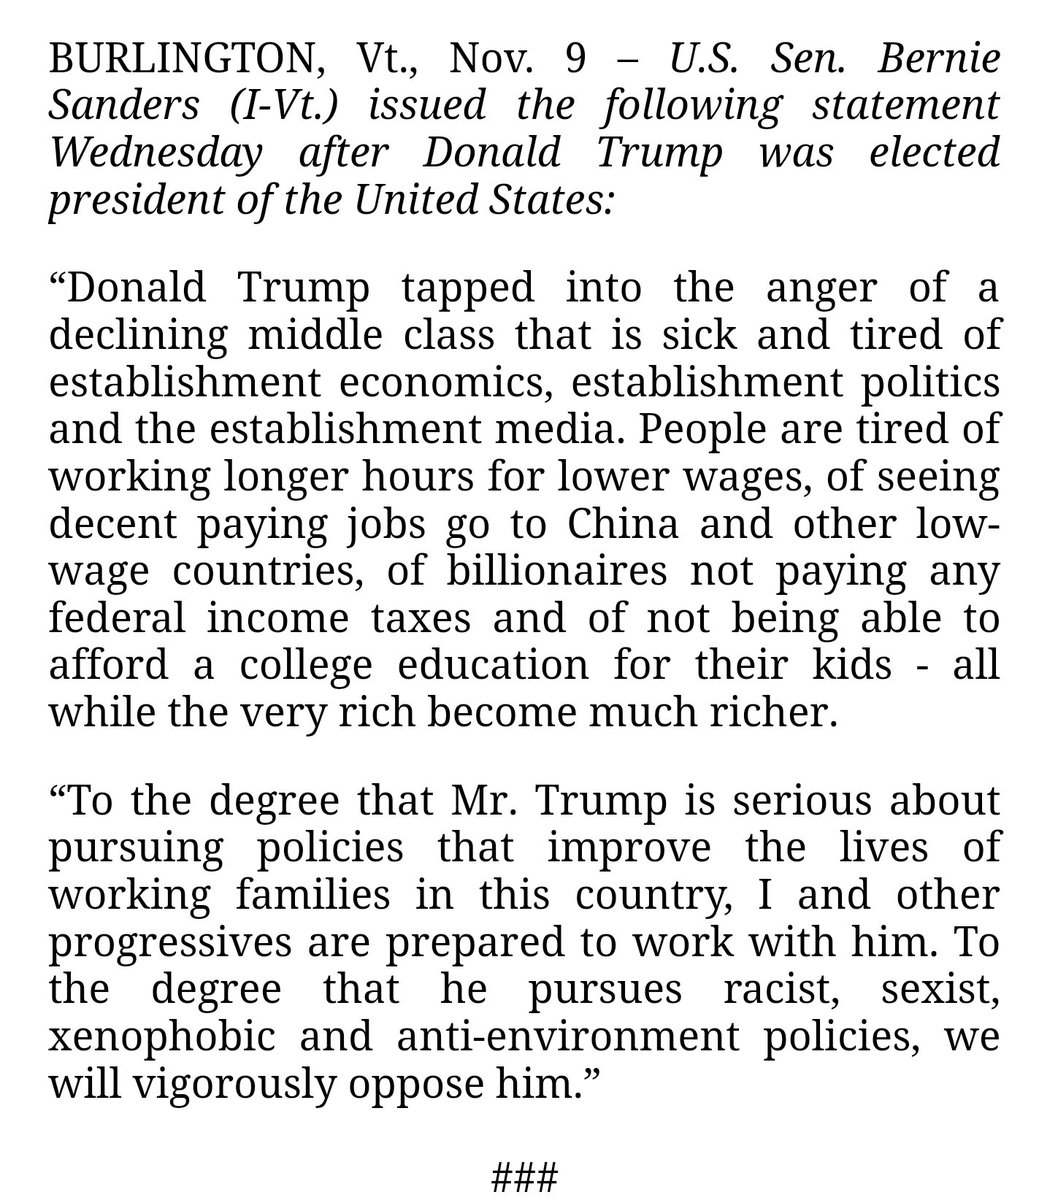 Bernie Sanders finally out with a statement: https://t.co/bltV4ap0mT